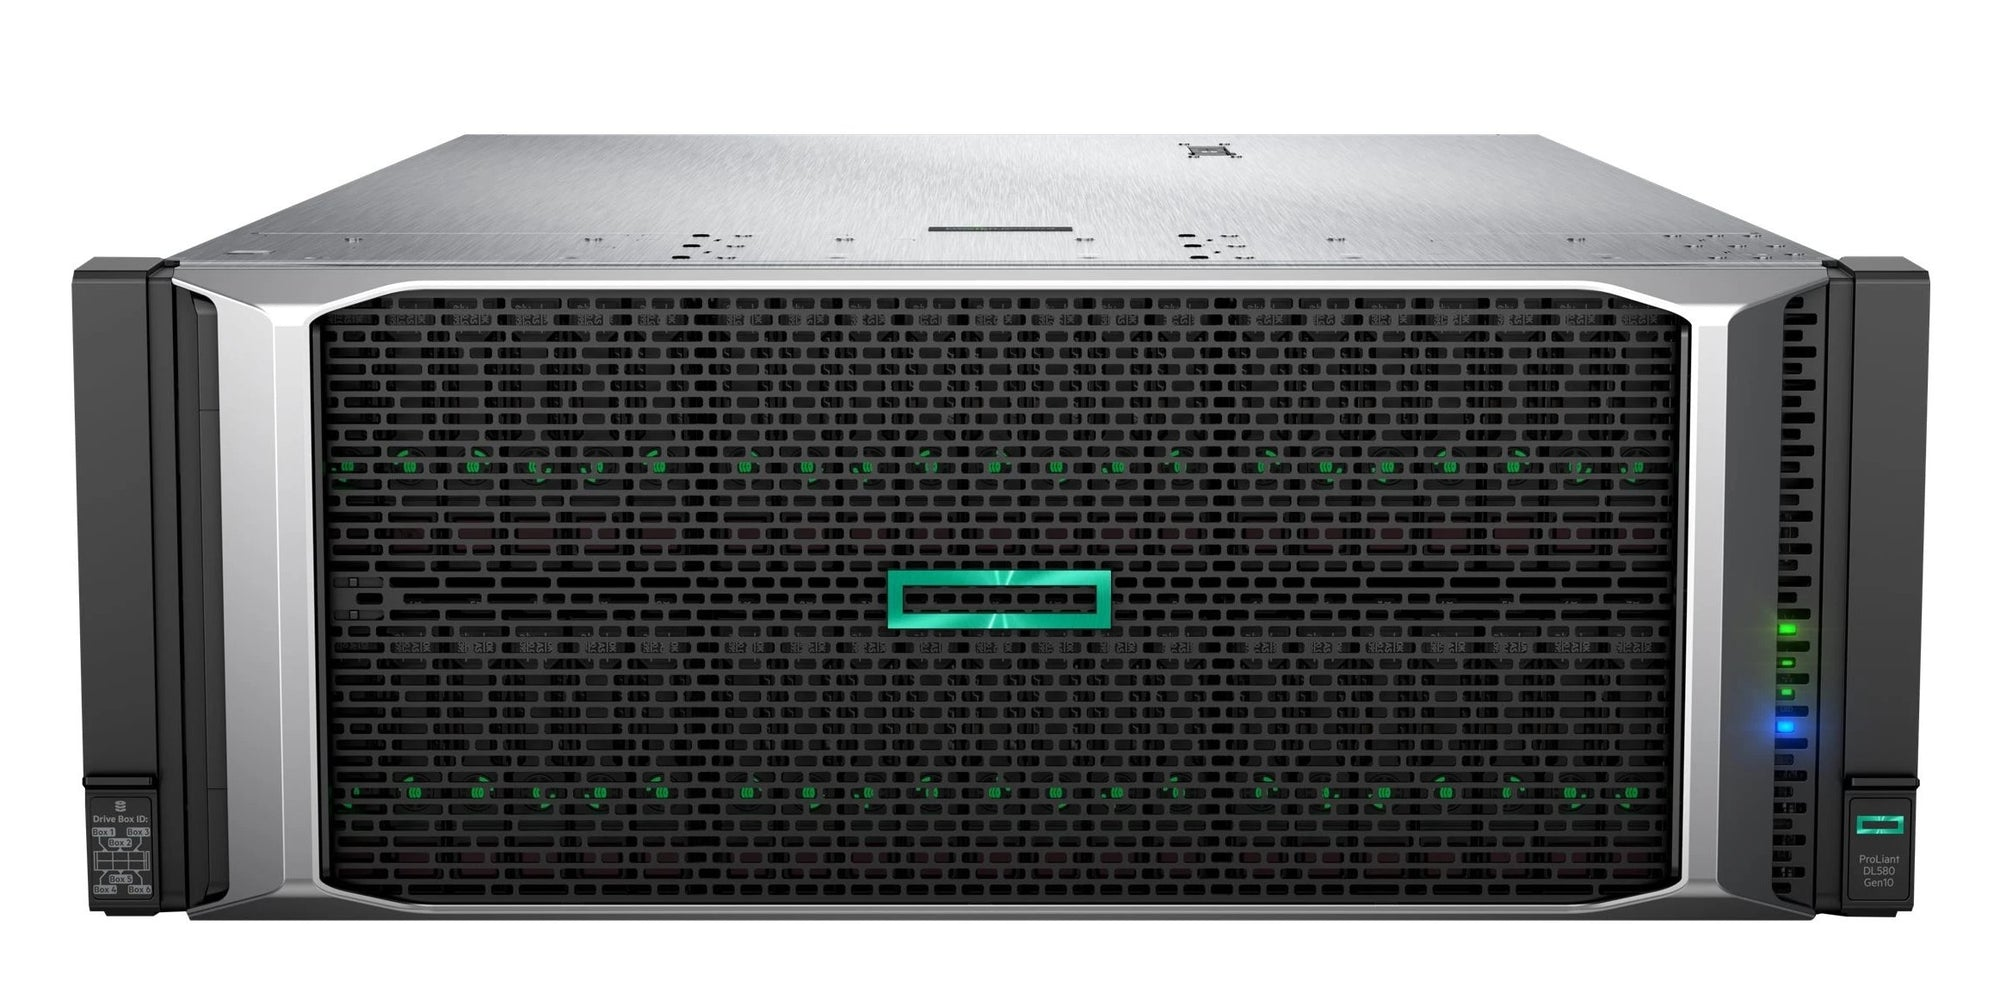 Refurbished HPE ProLiant DL580 Gen10 Configure to Order Server